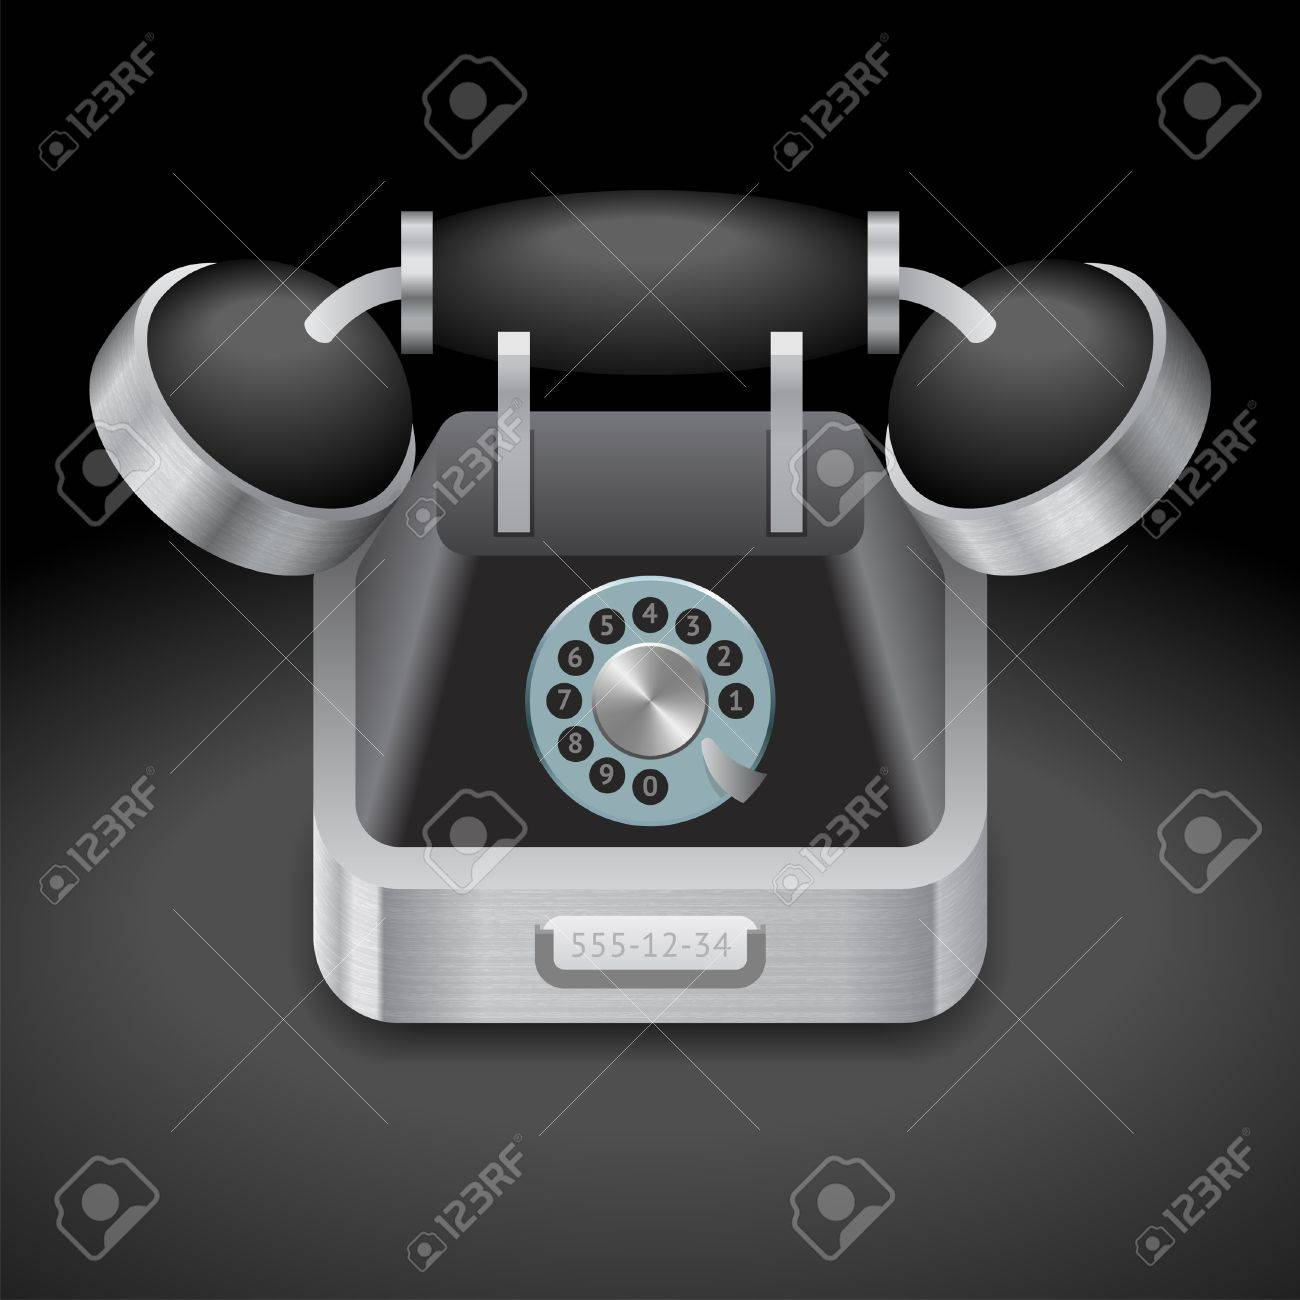 Icon for vintage phone. Dark background. Vector saved as eps-10, file contains objects with transparency. Stock Vector - 18422241